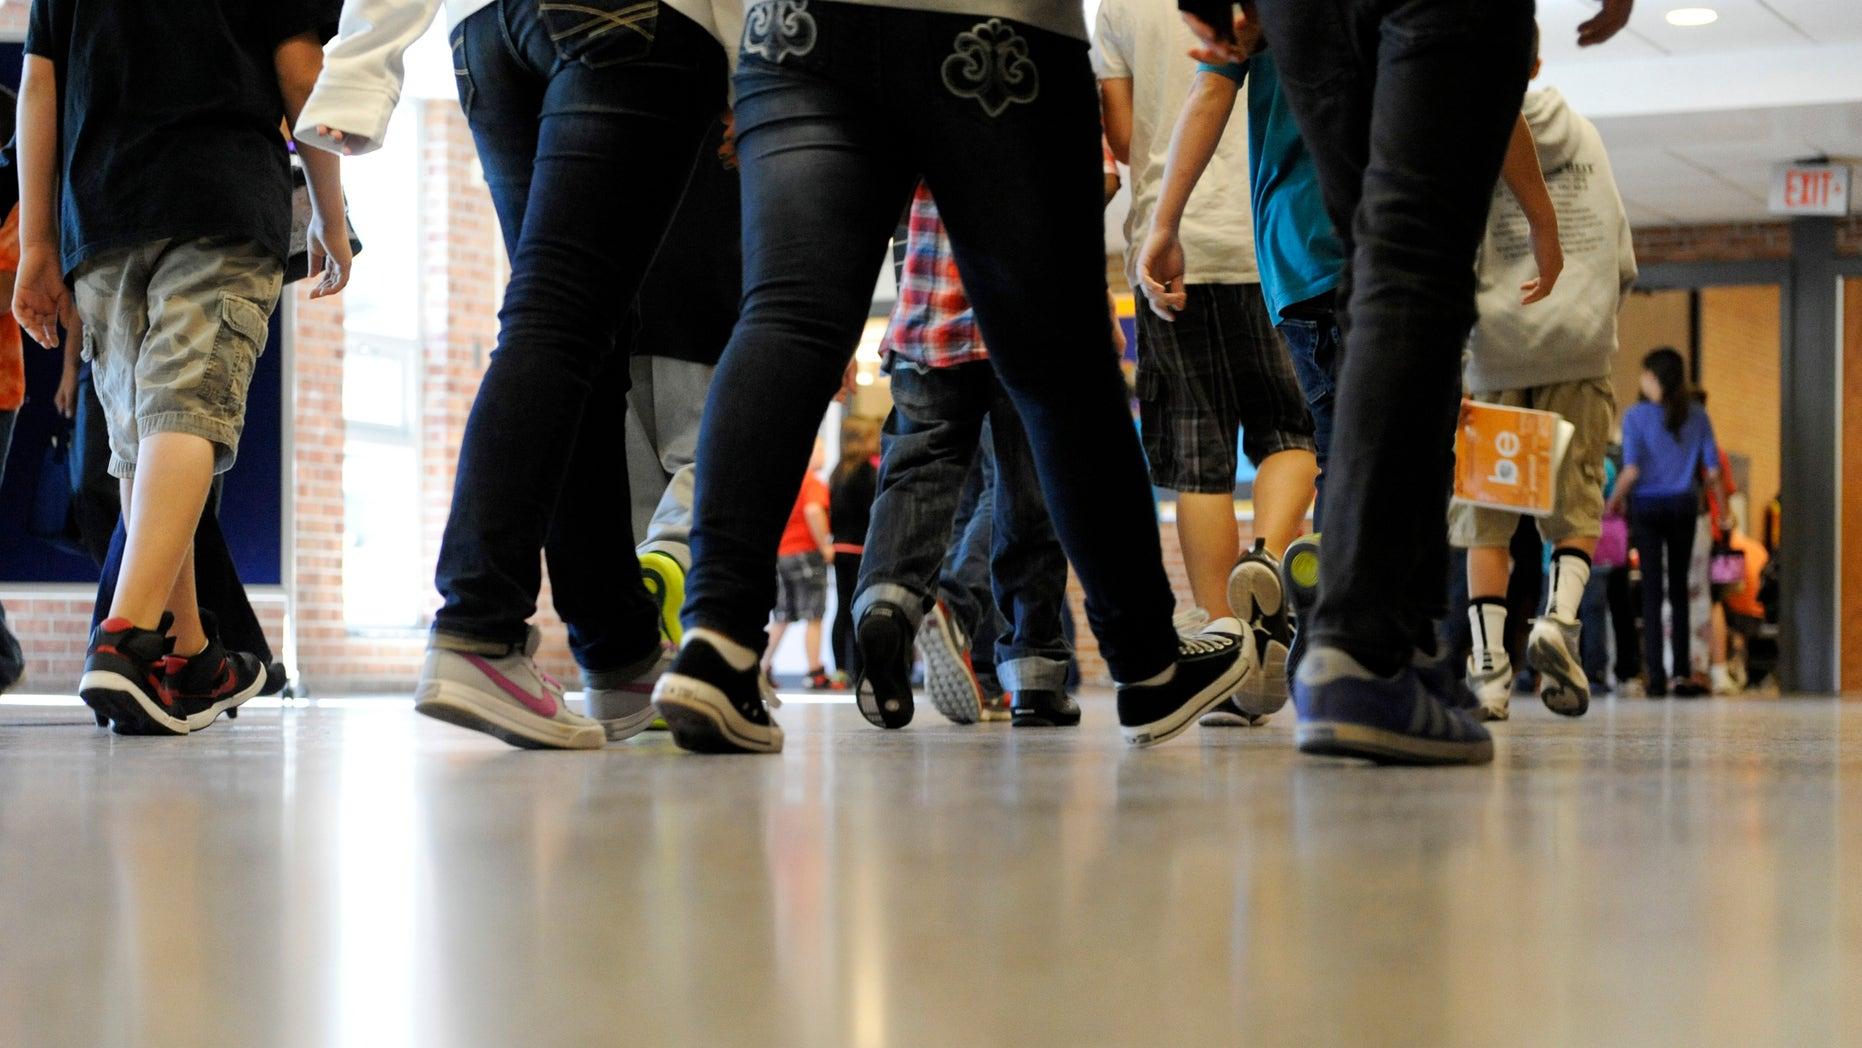 Sept. 11, 2012: File photo, students walk in the hallways as they enter the lunch line of the cafeteria at Draper Middle School in Rotterdam, N.Y. School for thousands of public school students is about to get quite a bit longer. Five states announced Monday, Dec. 3, 2012, they will add at least 300 hours of learning time to the calendar in some schools starting in 2013.